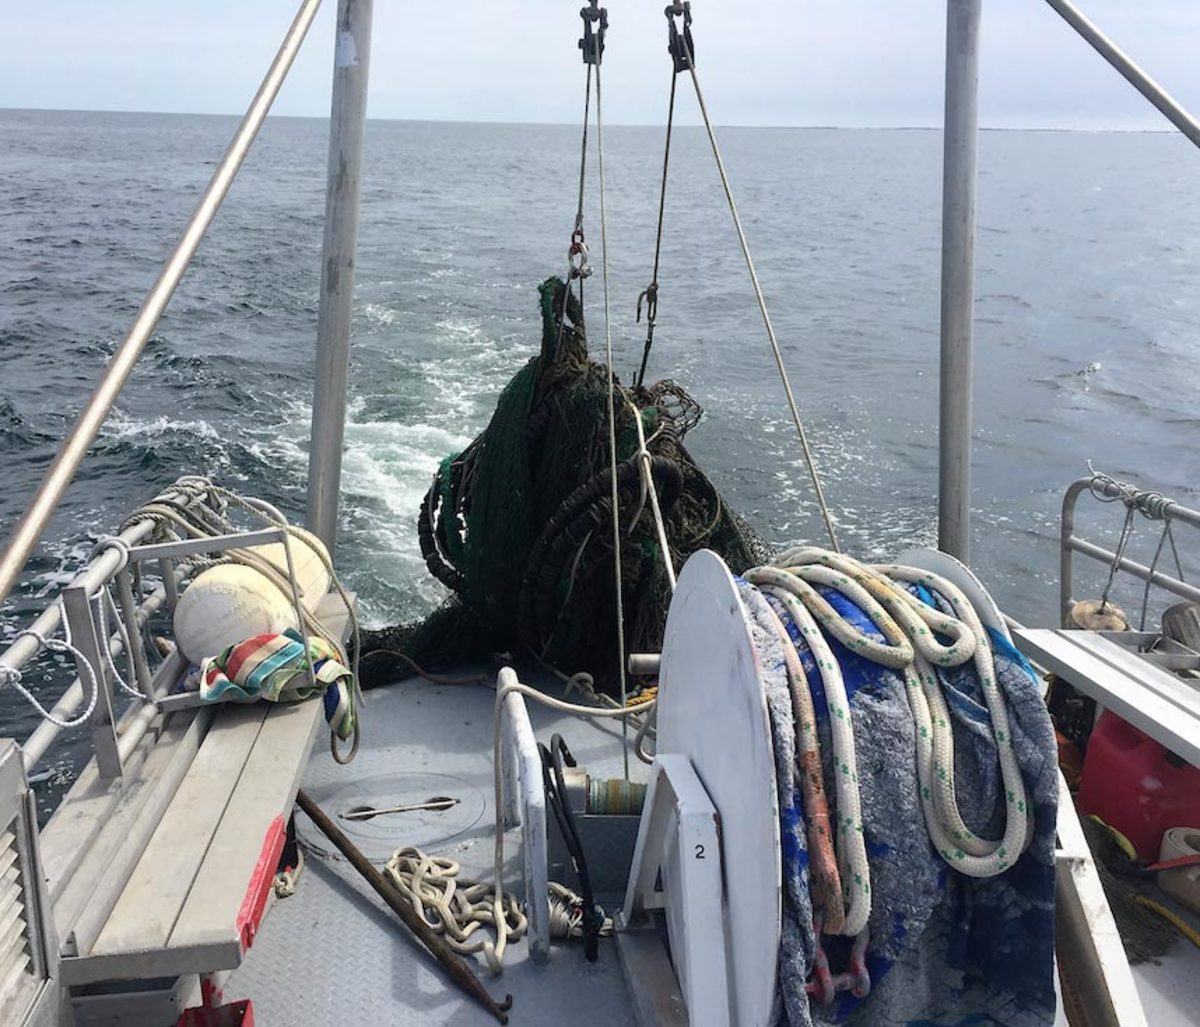 """A 1,500-pound mass of tangled, derelict fishing net that looked """"like it was breathing"""" slowly comes aboard a TowBoatUS boat in Ocean City, Md., a day before 12 rehabilitated sea turtles were released nearby."""